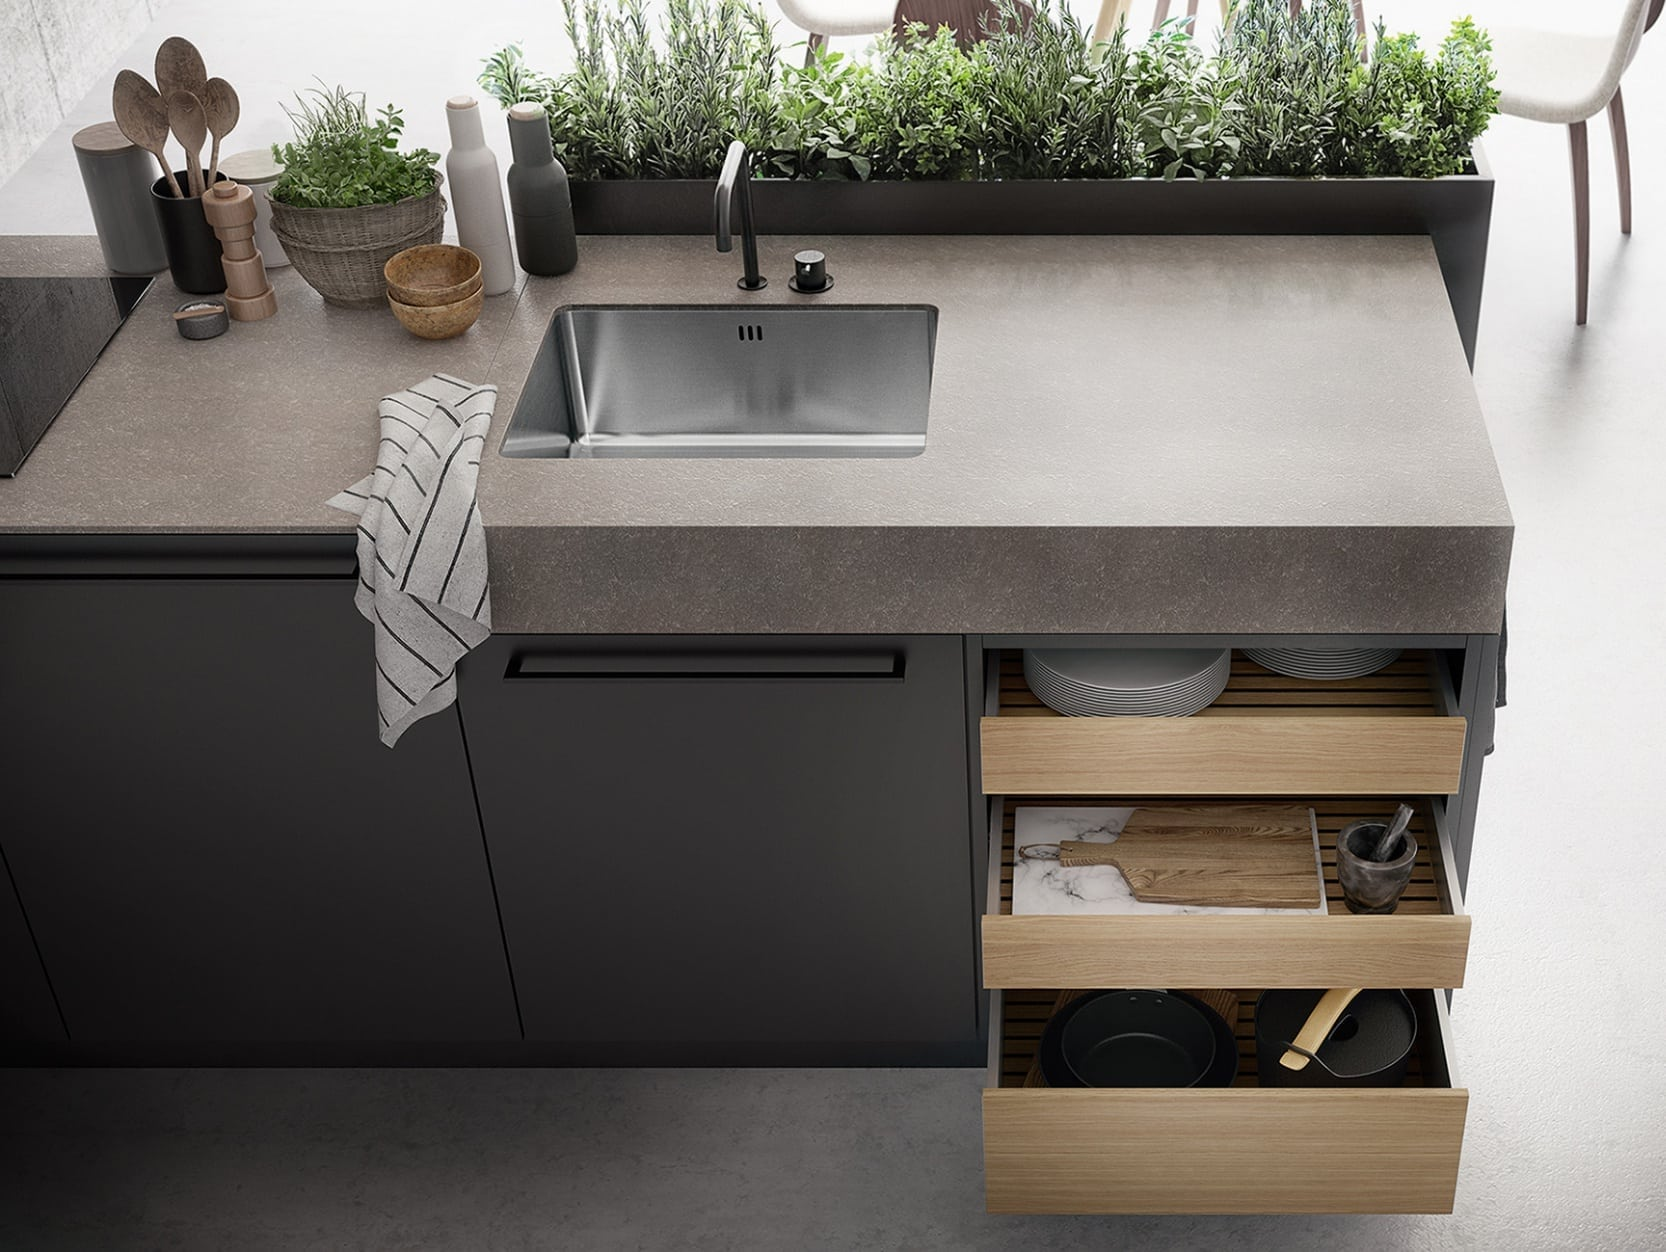 A siematic urban kitchen with wooden drawers sink and stone top